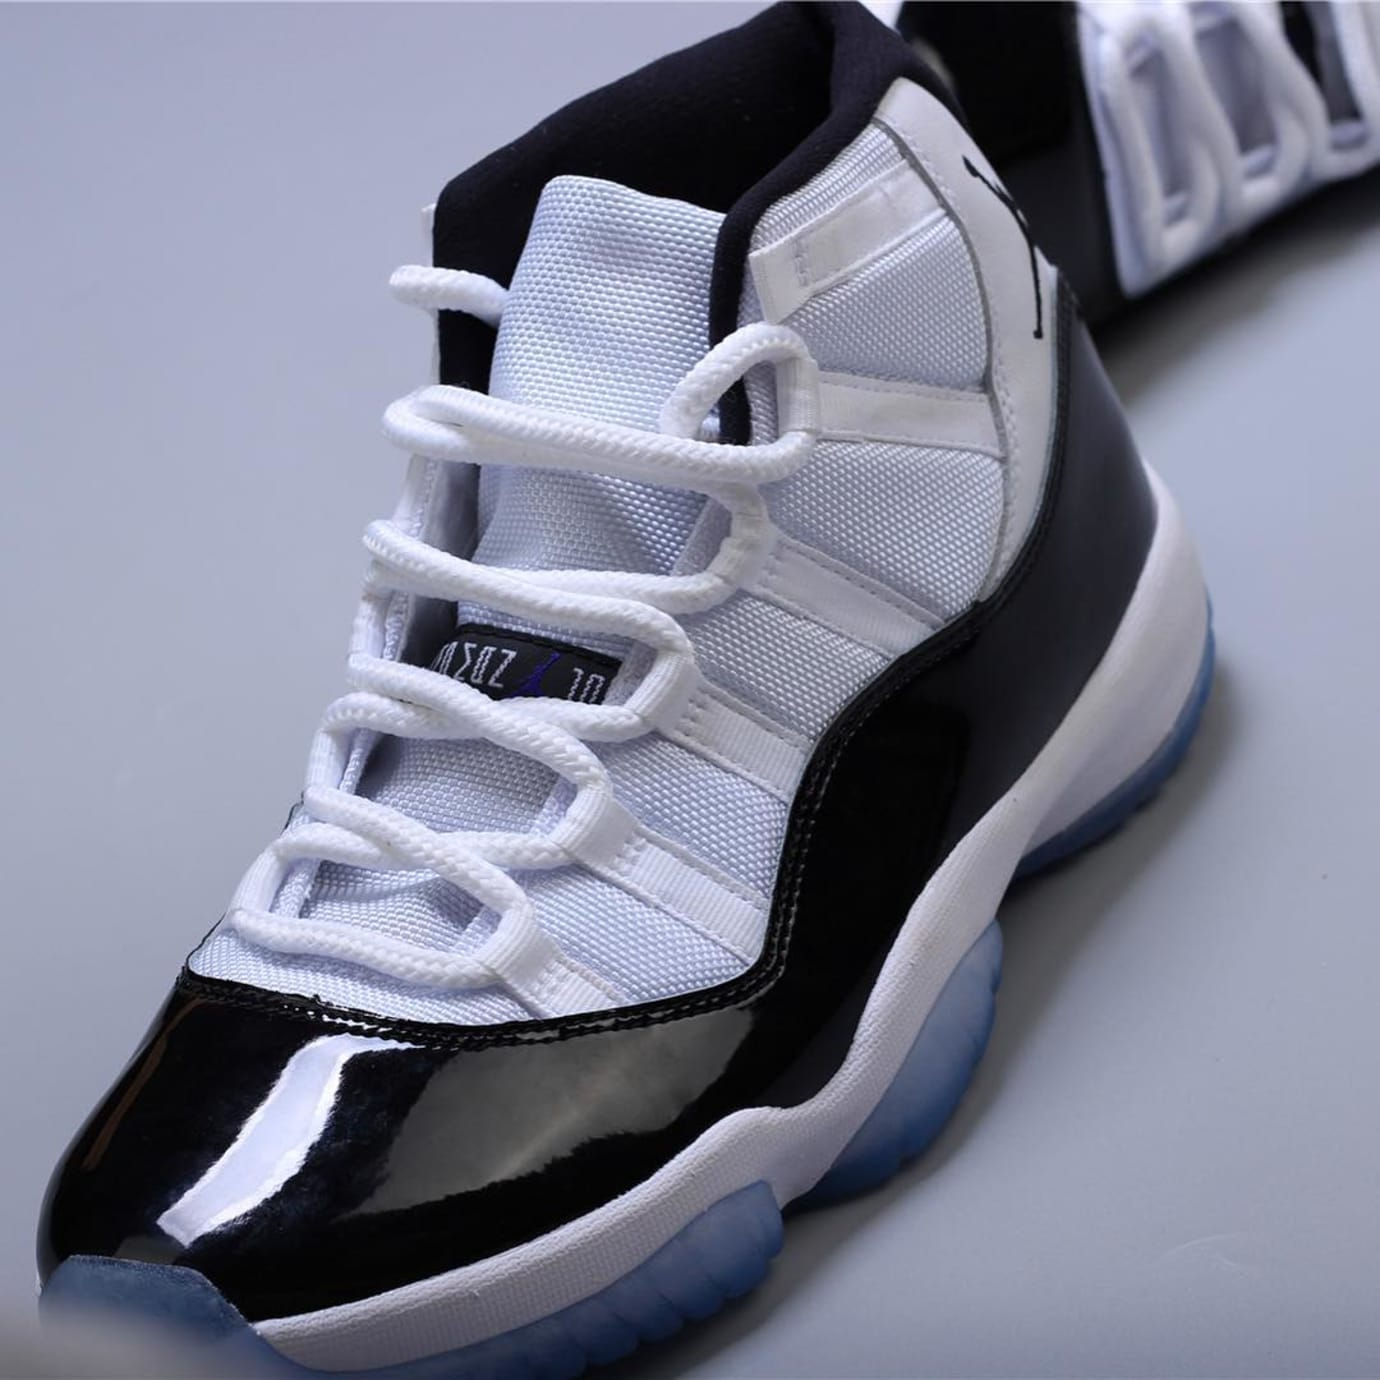 best deals on 7406b d847f Concord' Air Jordan 11 Returning In 2018 378037-100 | Sole ...